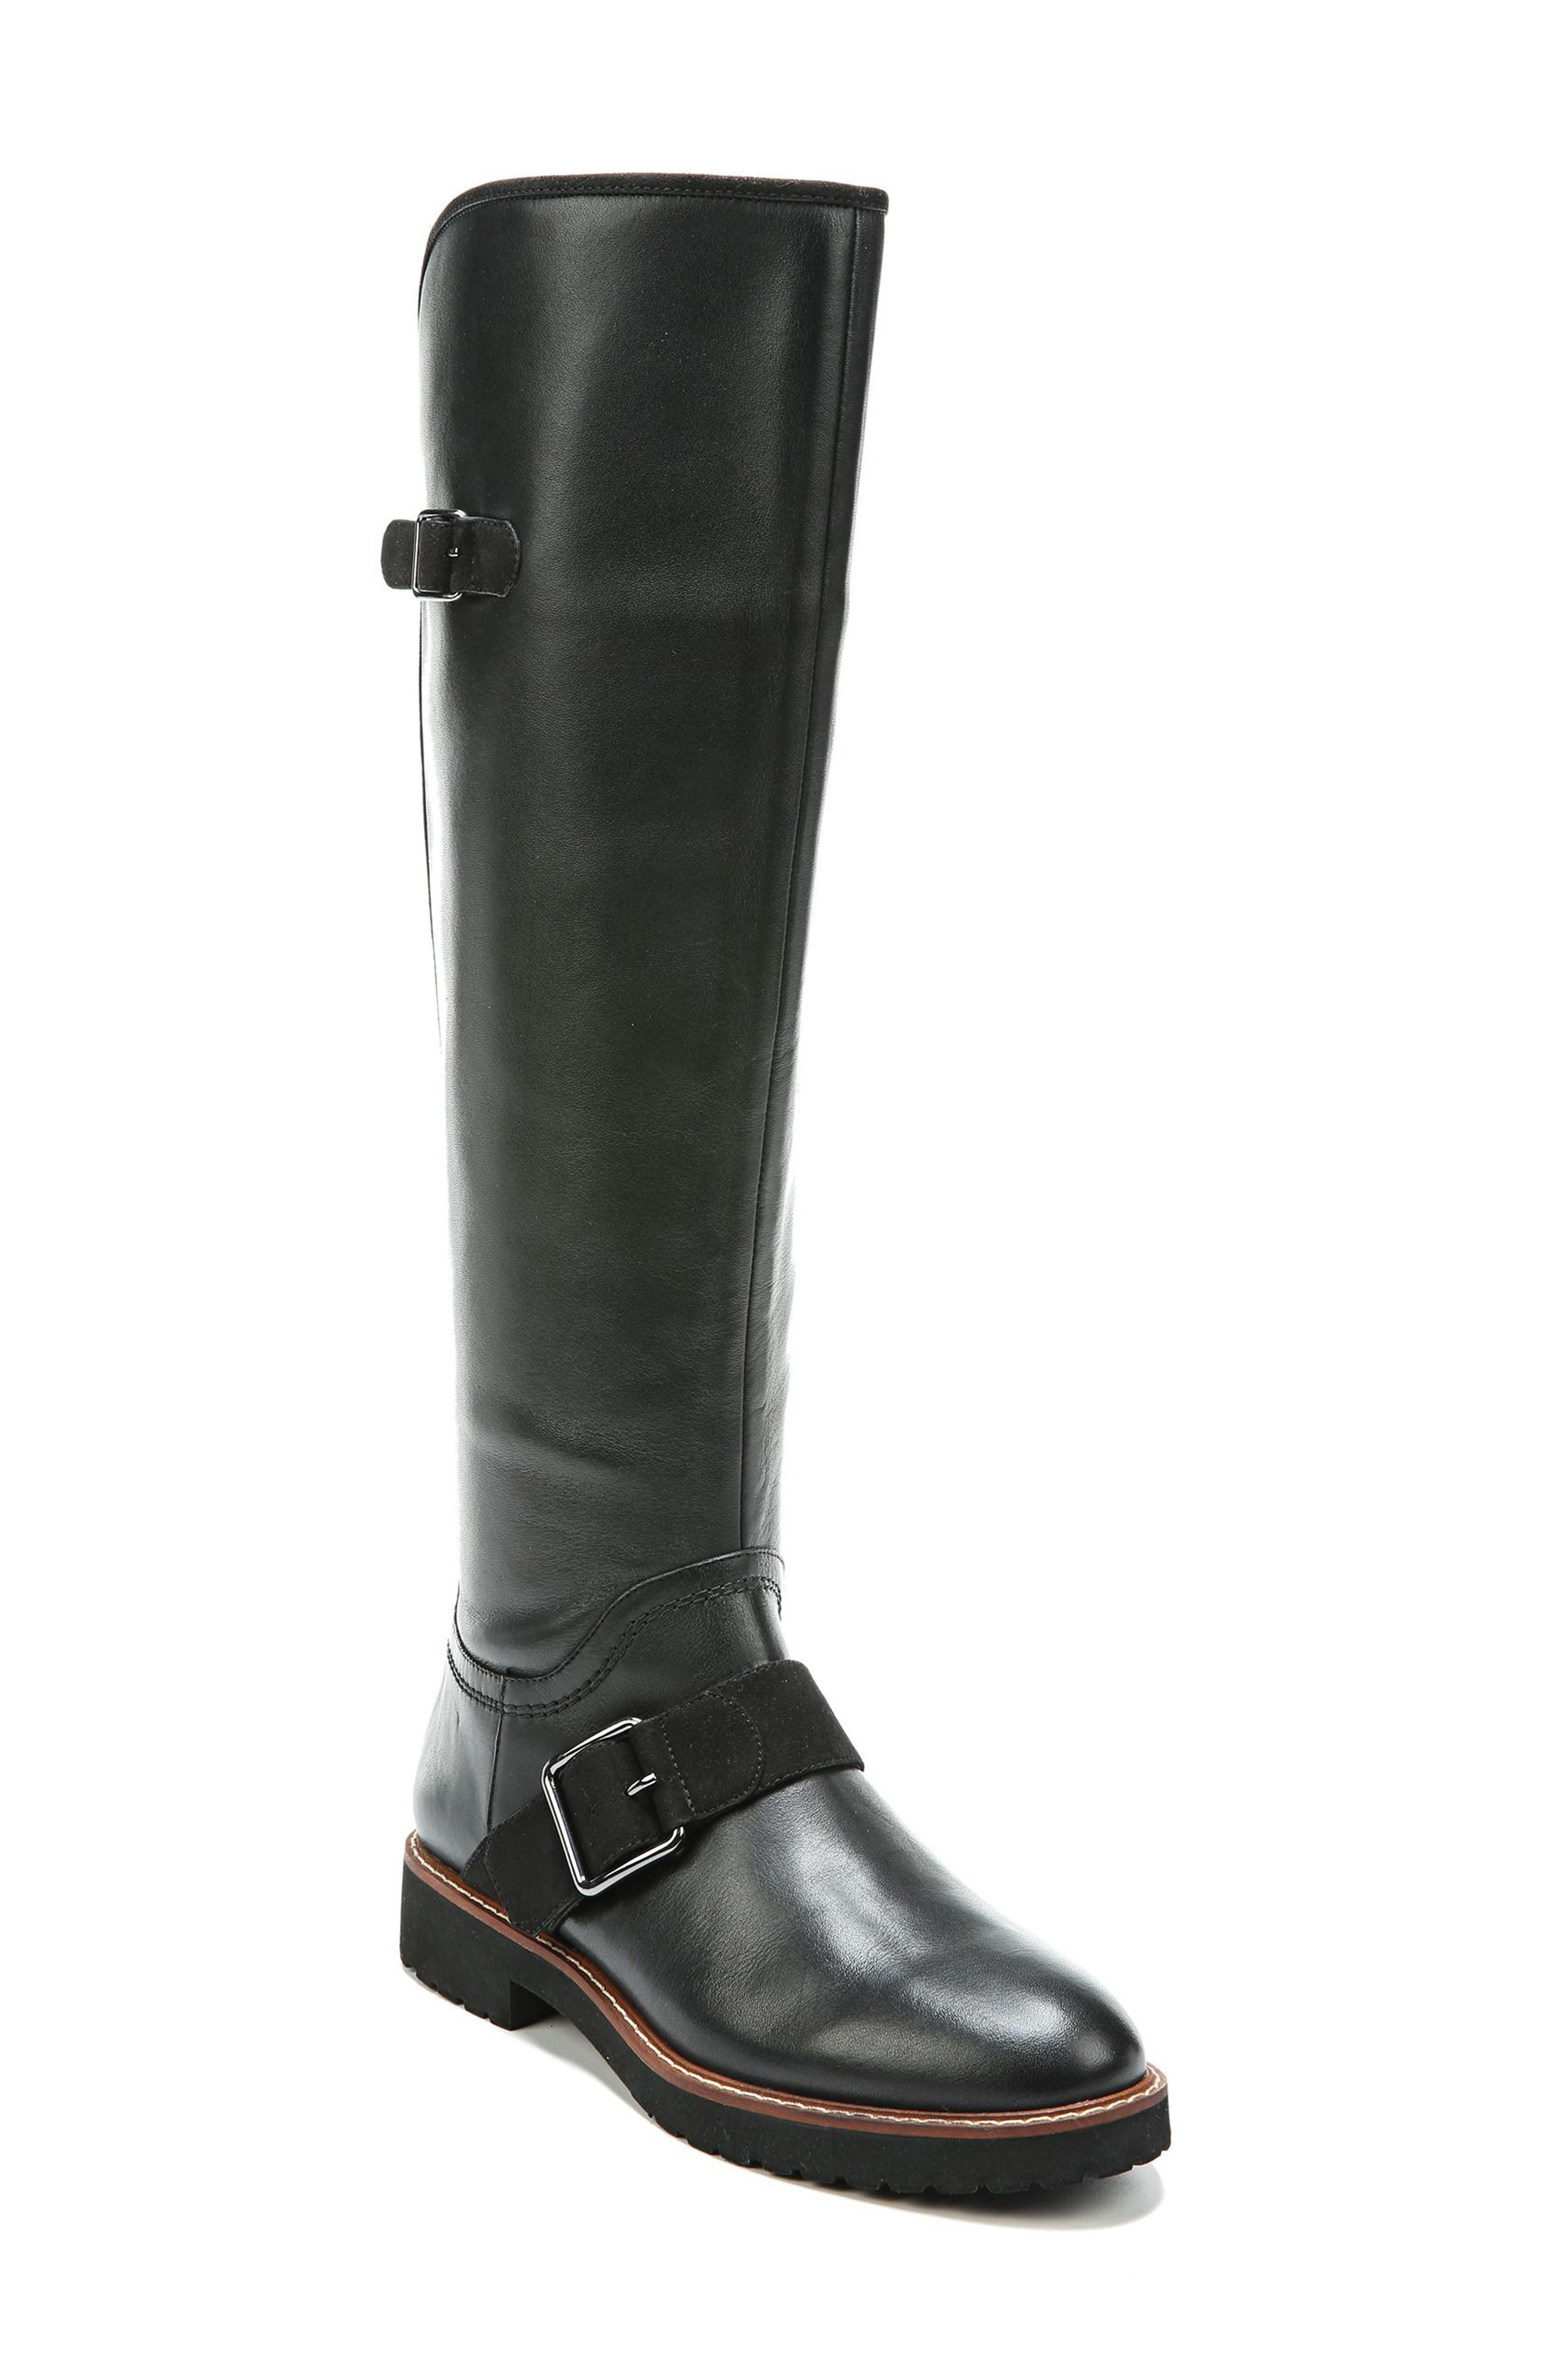 Cutler Riding Boot,                         Main,                         color, Black Leather